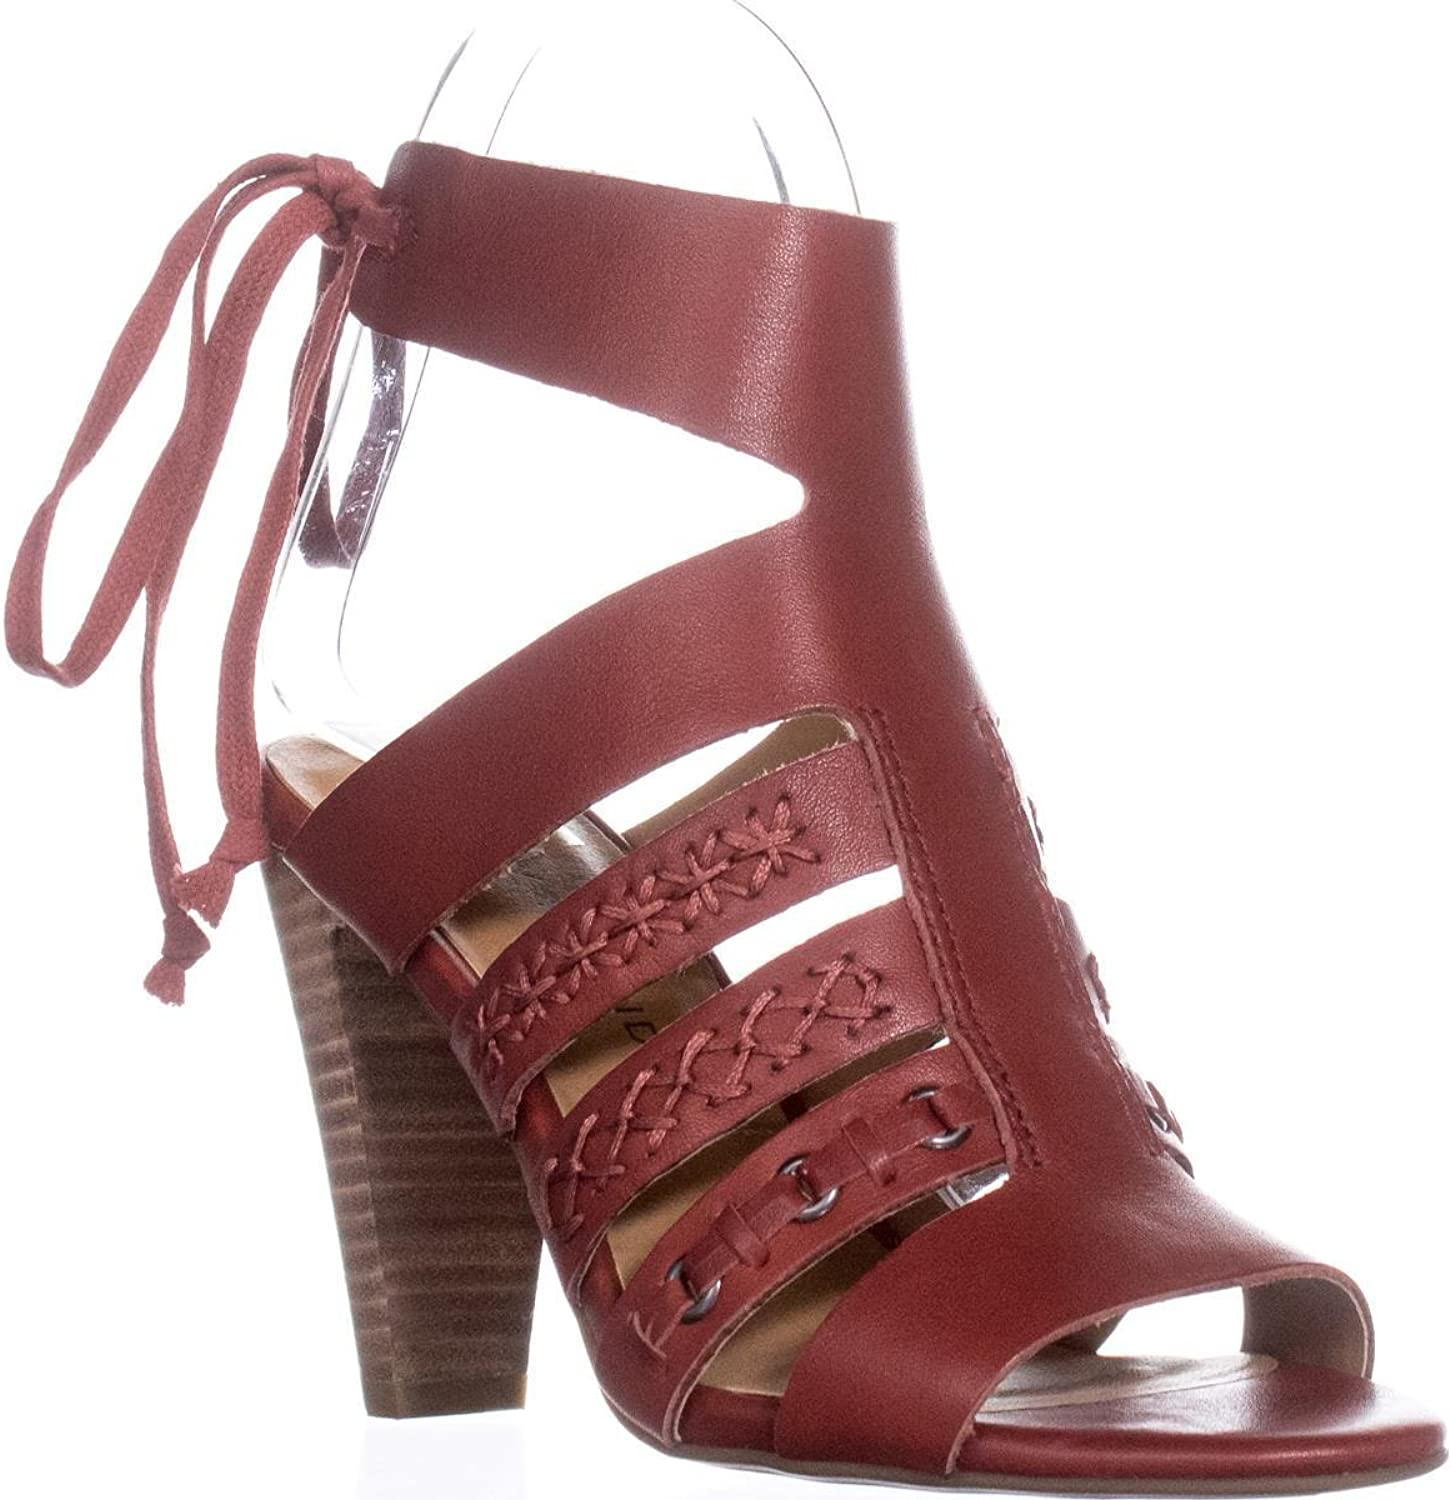 Lucky Brand Radfas Lace-Up Sandals, Picante, 6.5 US   36.5 EU